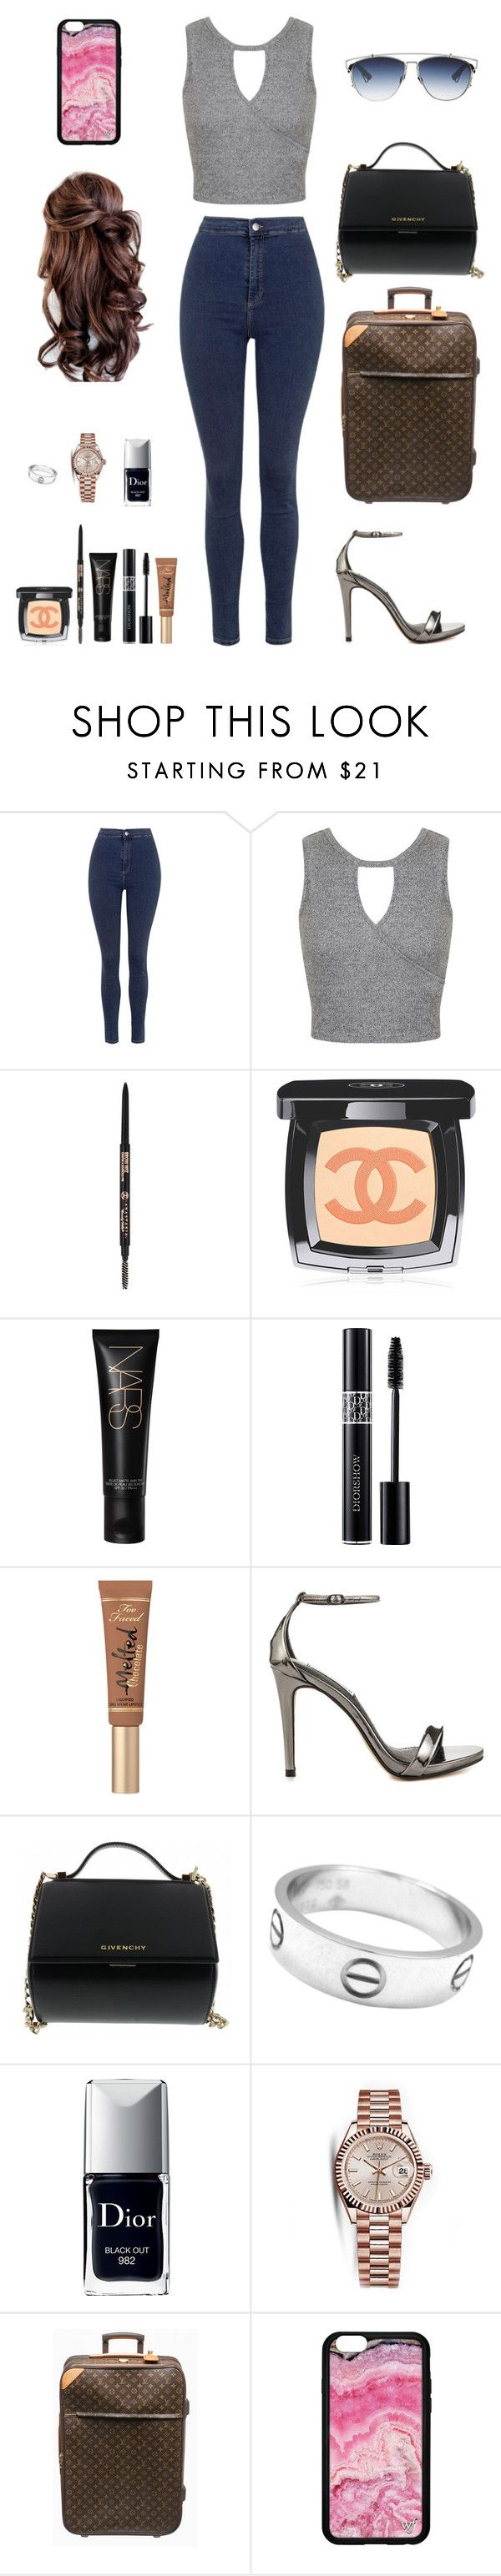 """""""Monday ootd// Mexico trip day 4"""" by foxyfries ❤ liked on Polyvore featuring Topshop, Miss Selfridge, Chanel, Christian Dior, Too Faced Cosmetics, Steve Madden, Givenchy, Cartier, Rolex and Louis Vuitton"""